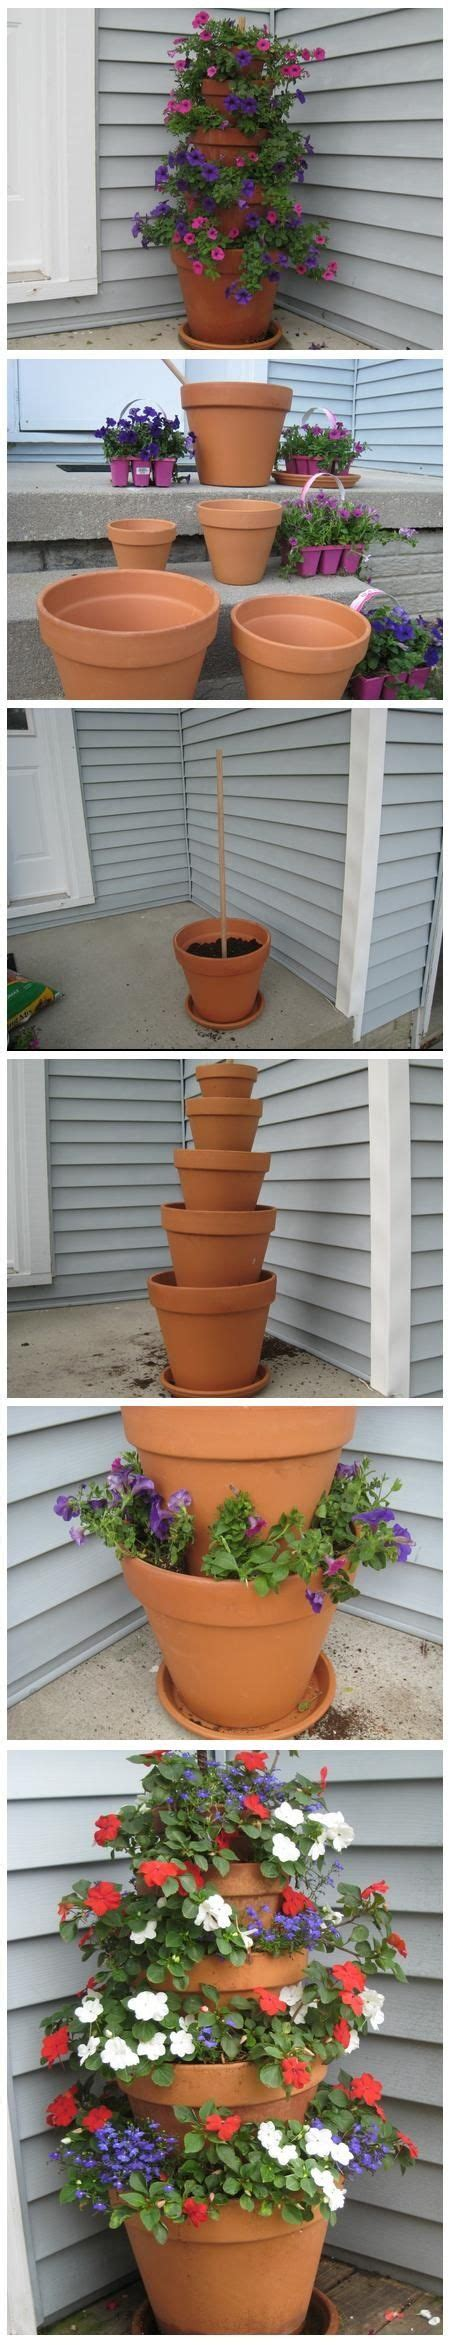 How To Make A Terracotta Pot Flower Tower With Annuals Flower Tower Planter